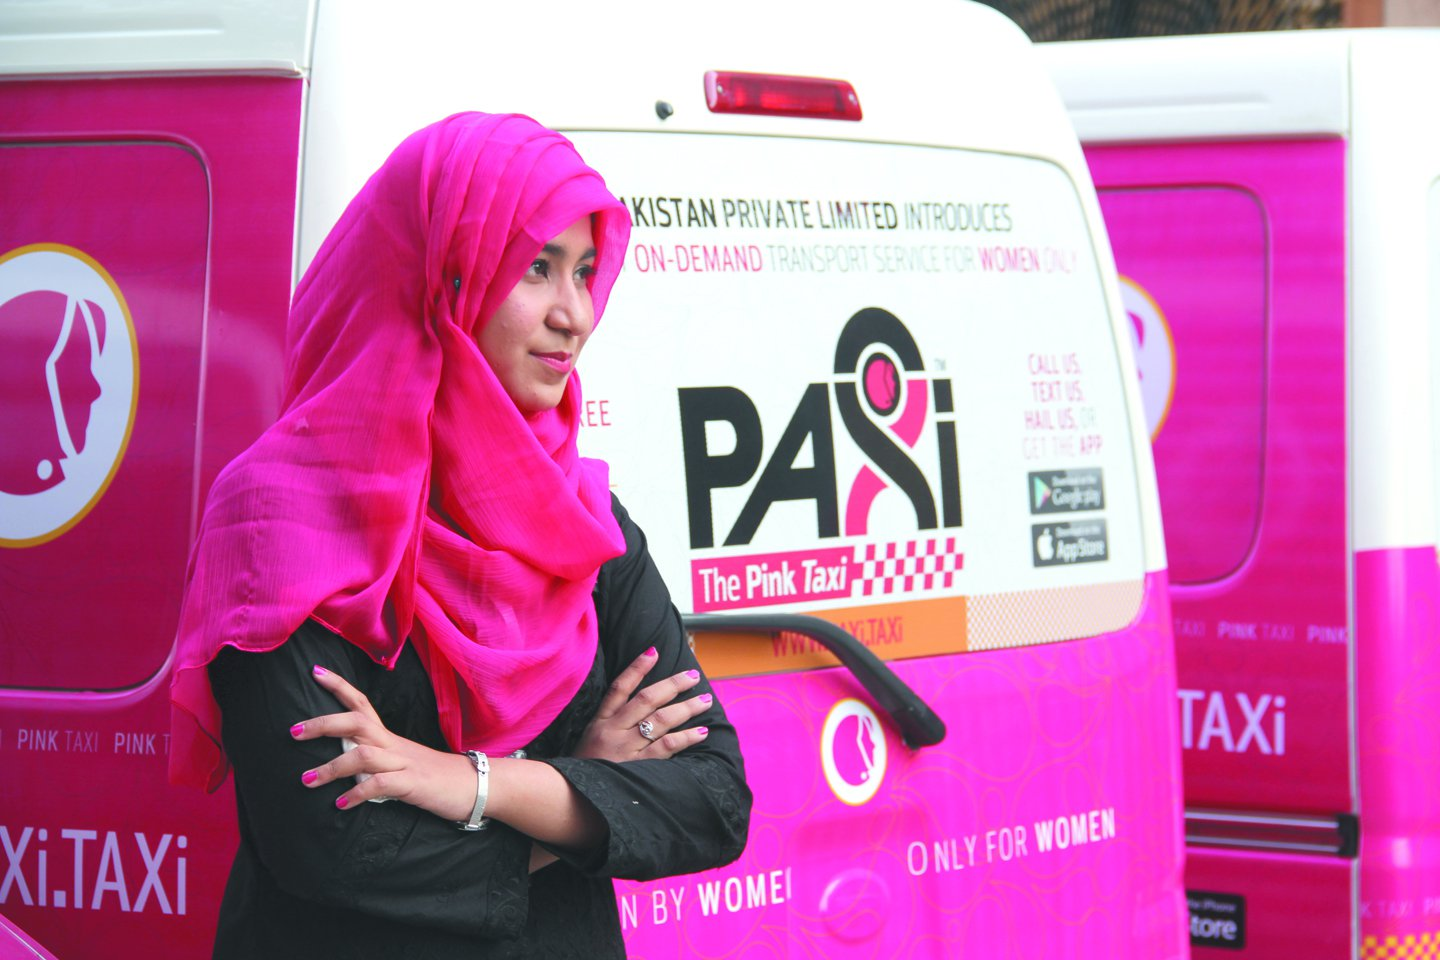 New taxi in town: Paxi has a total of 33 vehicles with 12 pink taxis, 6 paxi taxis and 15 bike taxis, according to Paxi manager Shahrukh Shah. Photo: Ayesha Mir/ Express